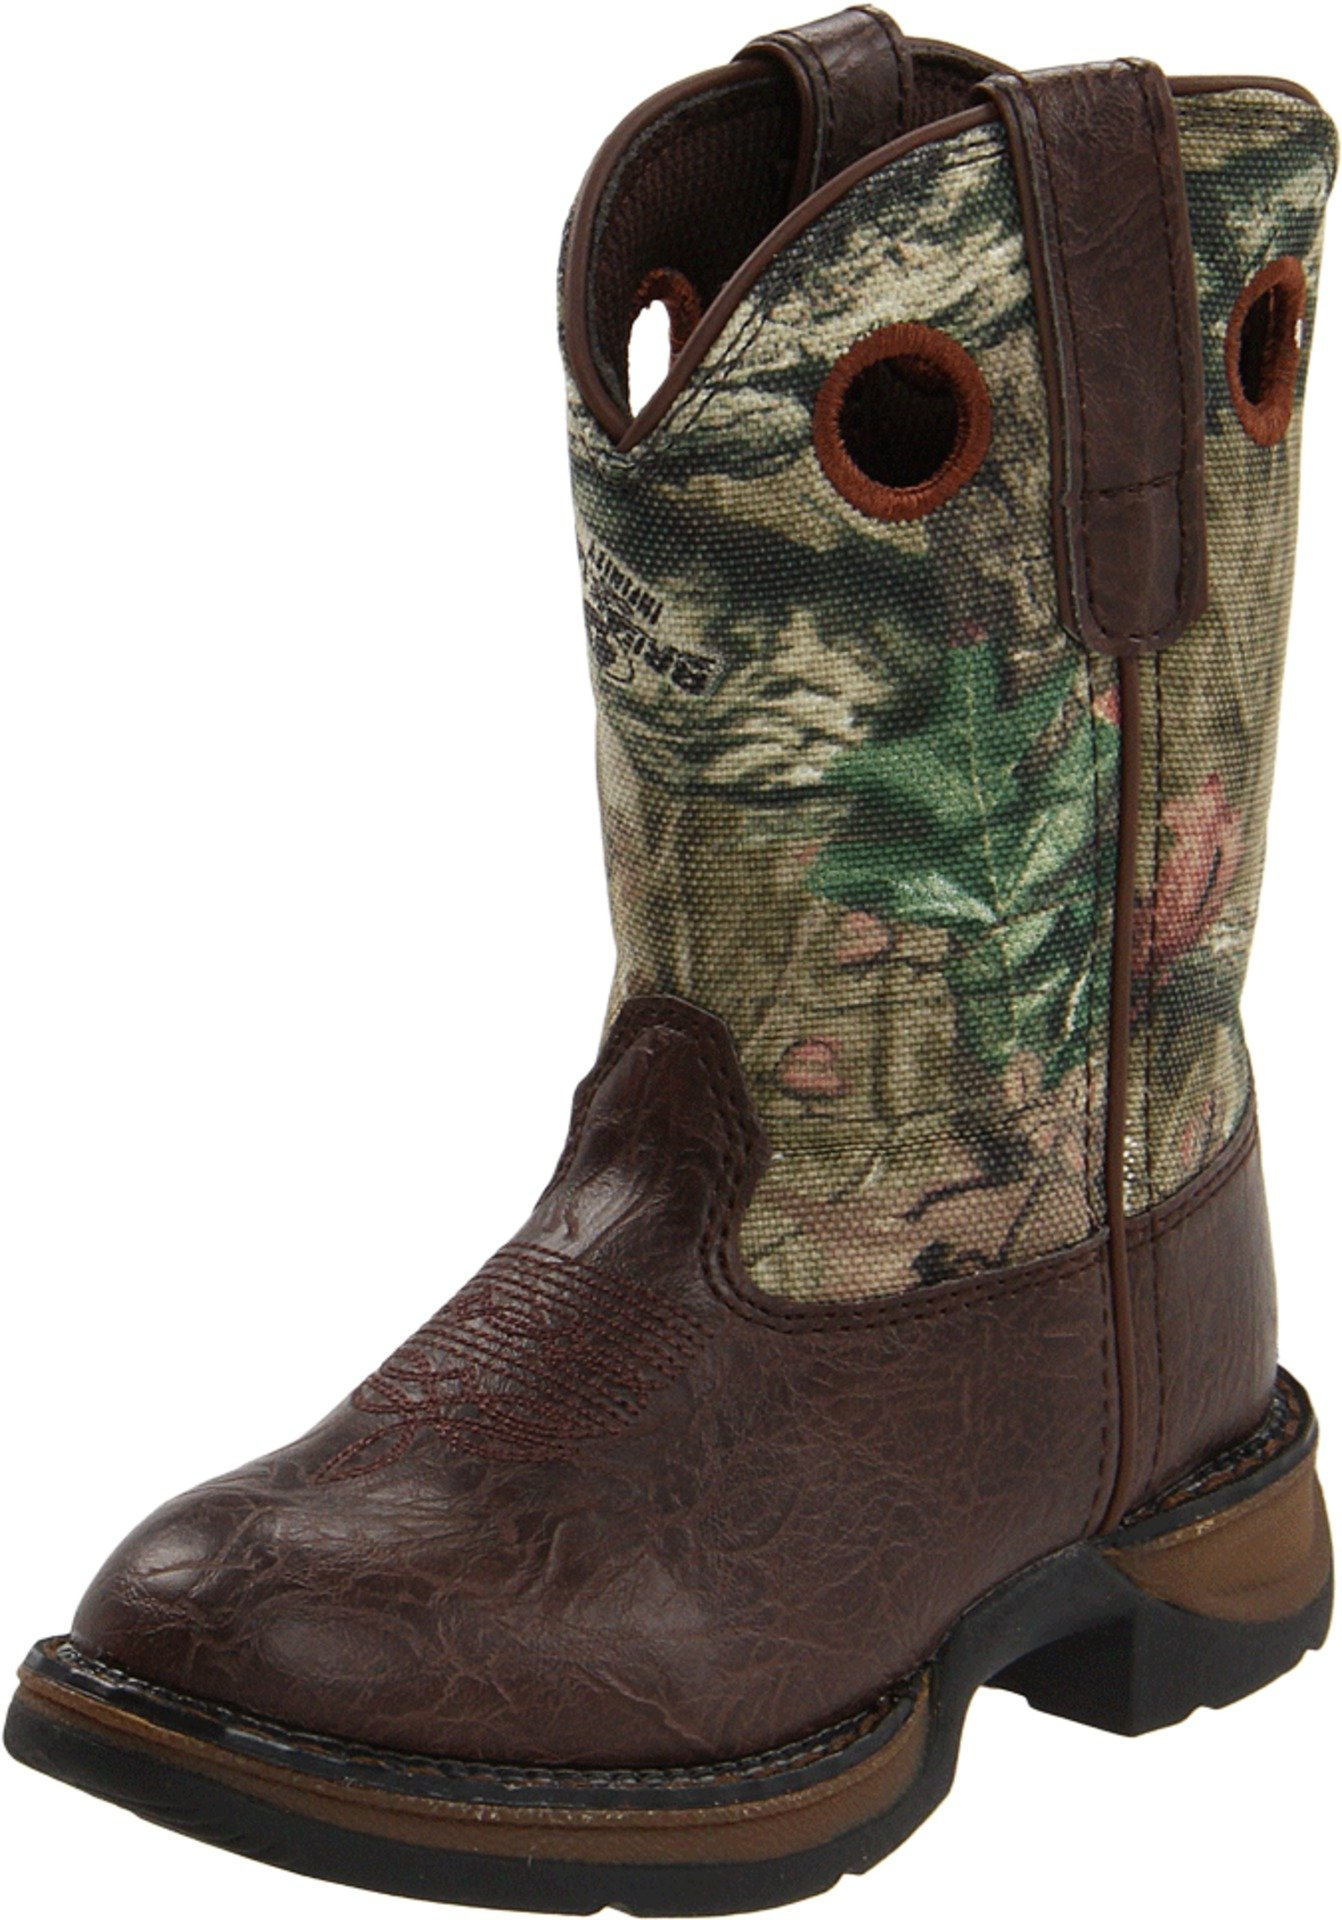 Durango Kids BT250 Lil' 8 Inch Camo,Brown/Mobu Infinity,11 M US Little Kid